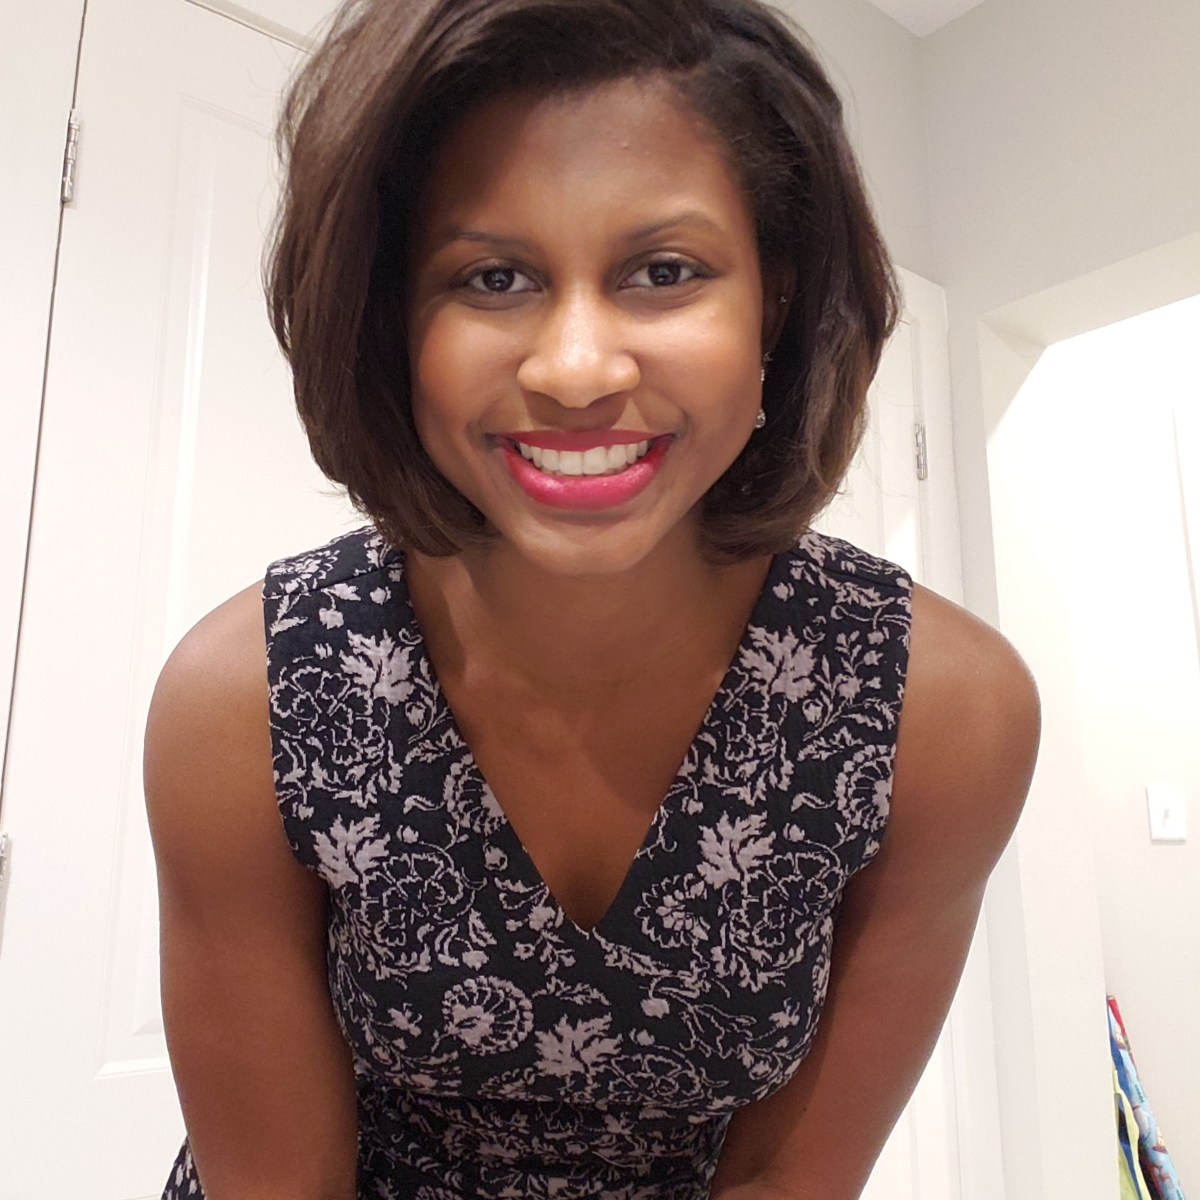 Jalynn smiling with red lipstick, short haircut, and happy